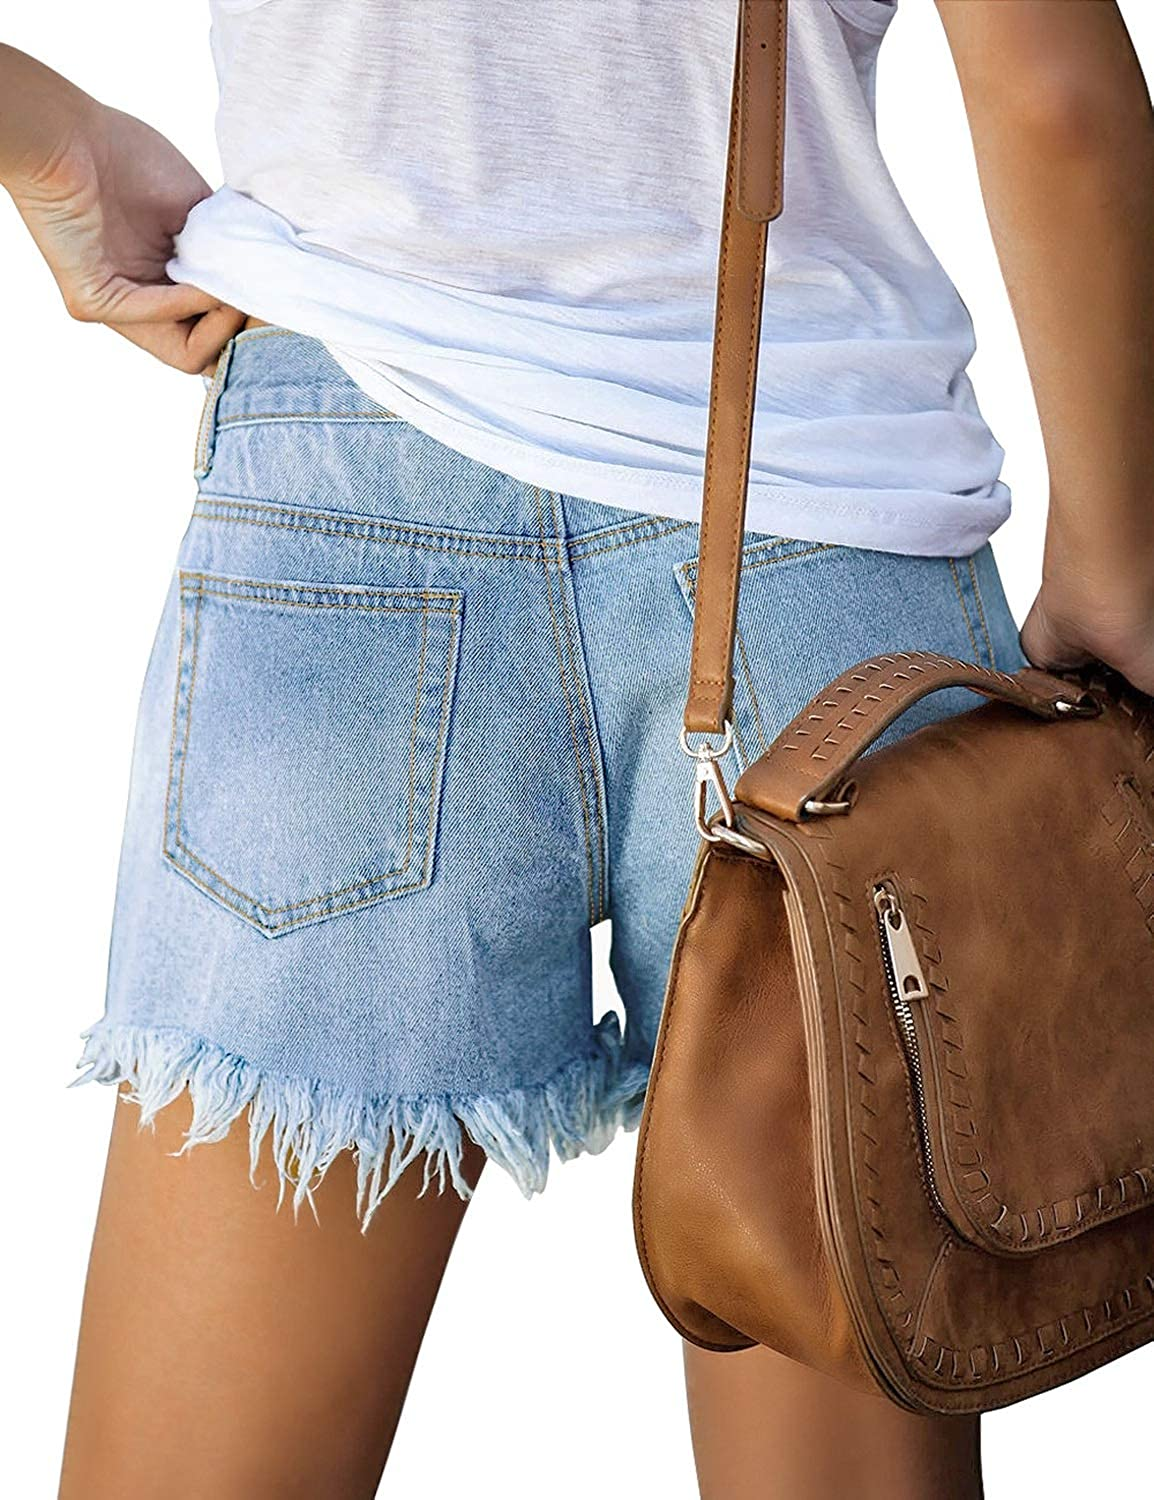 Ftaisyg Womens Stretchy Denim Shorts Hotpants in Washed Distressed Jeans Boyfriend Skinny Ripped